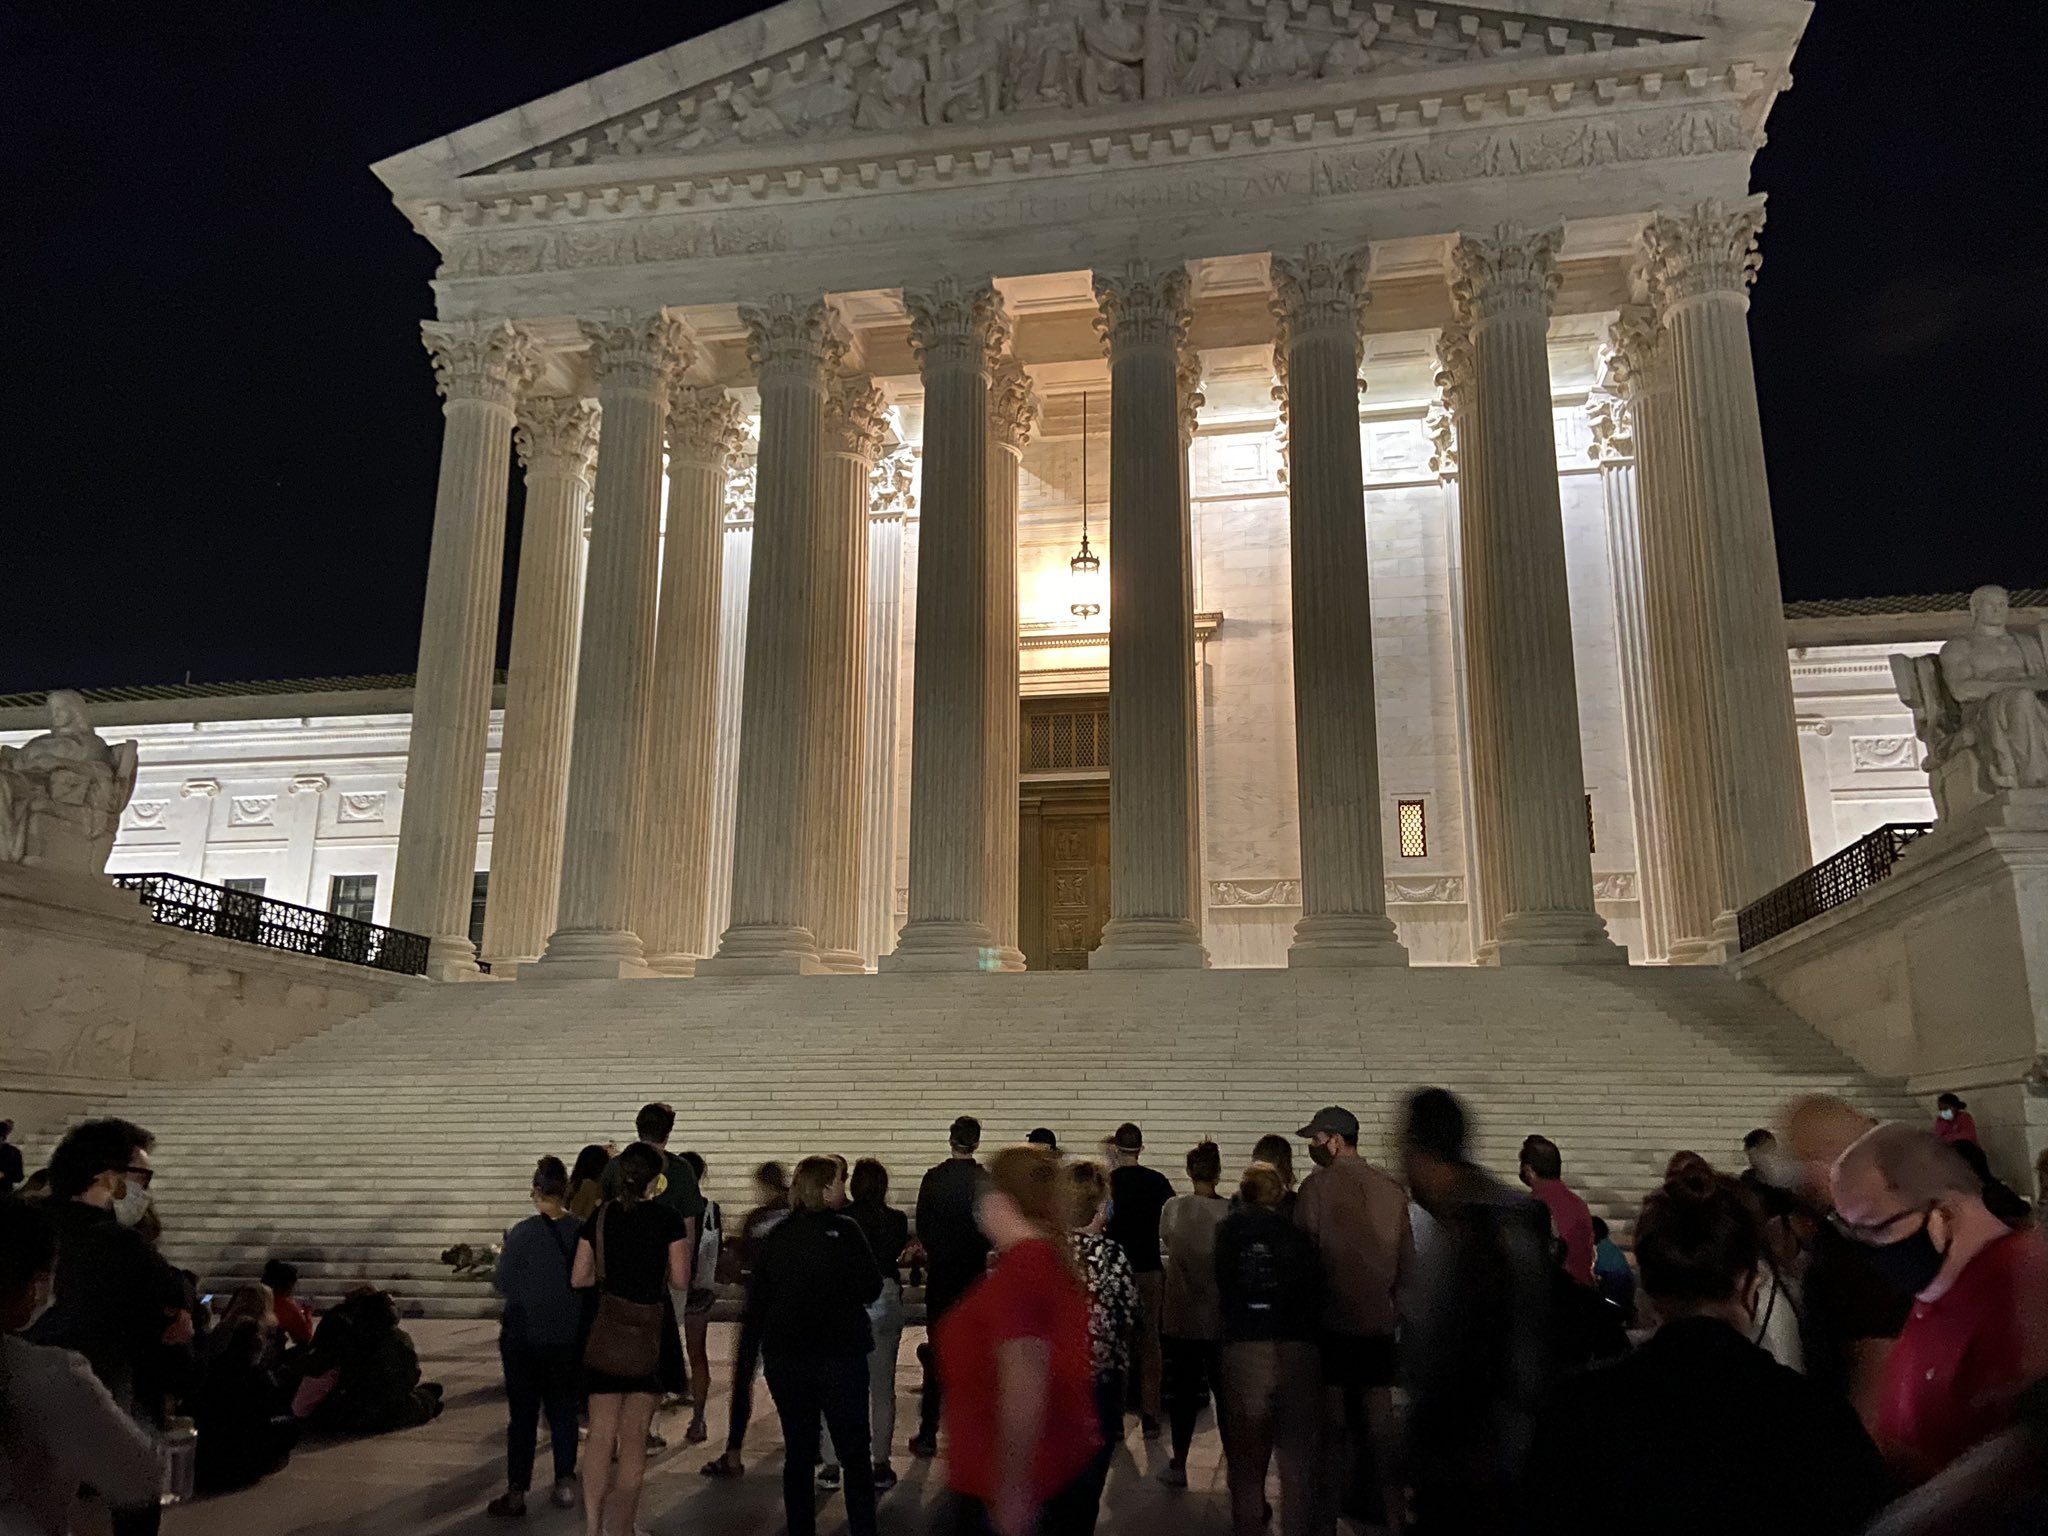 Mourners are holding a candlelight vigil outside of the Supreme Court